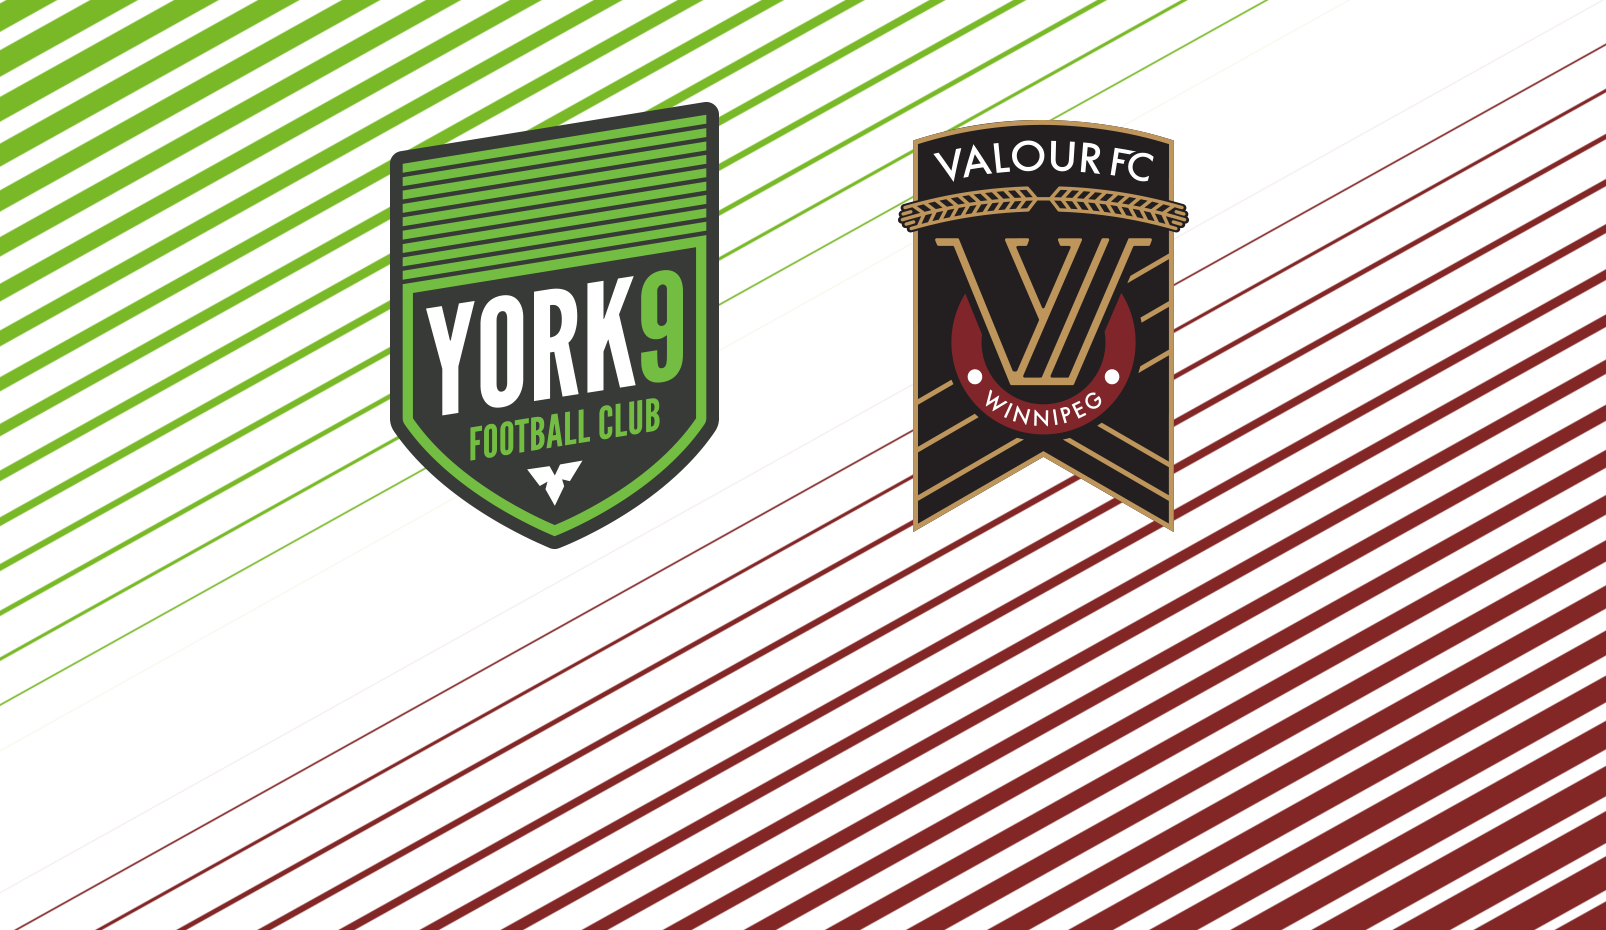 PREVIEW: York9 FC vs. Valour FC - Match #75